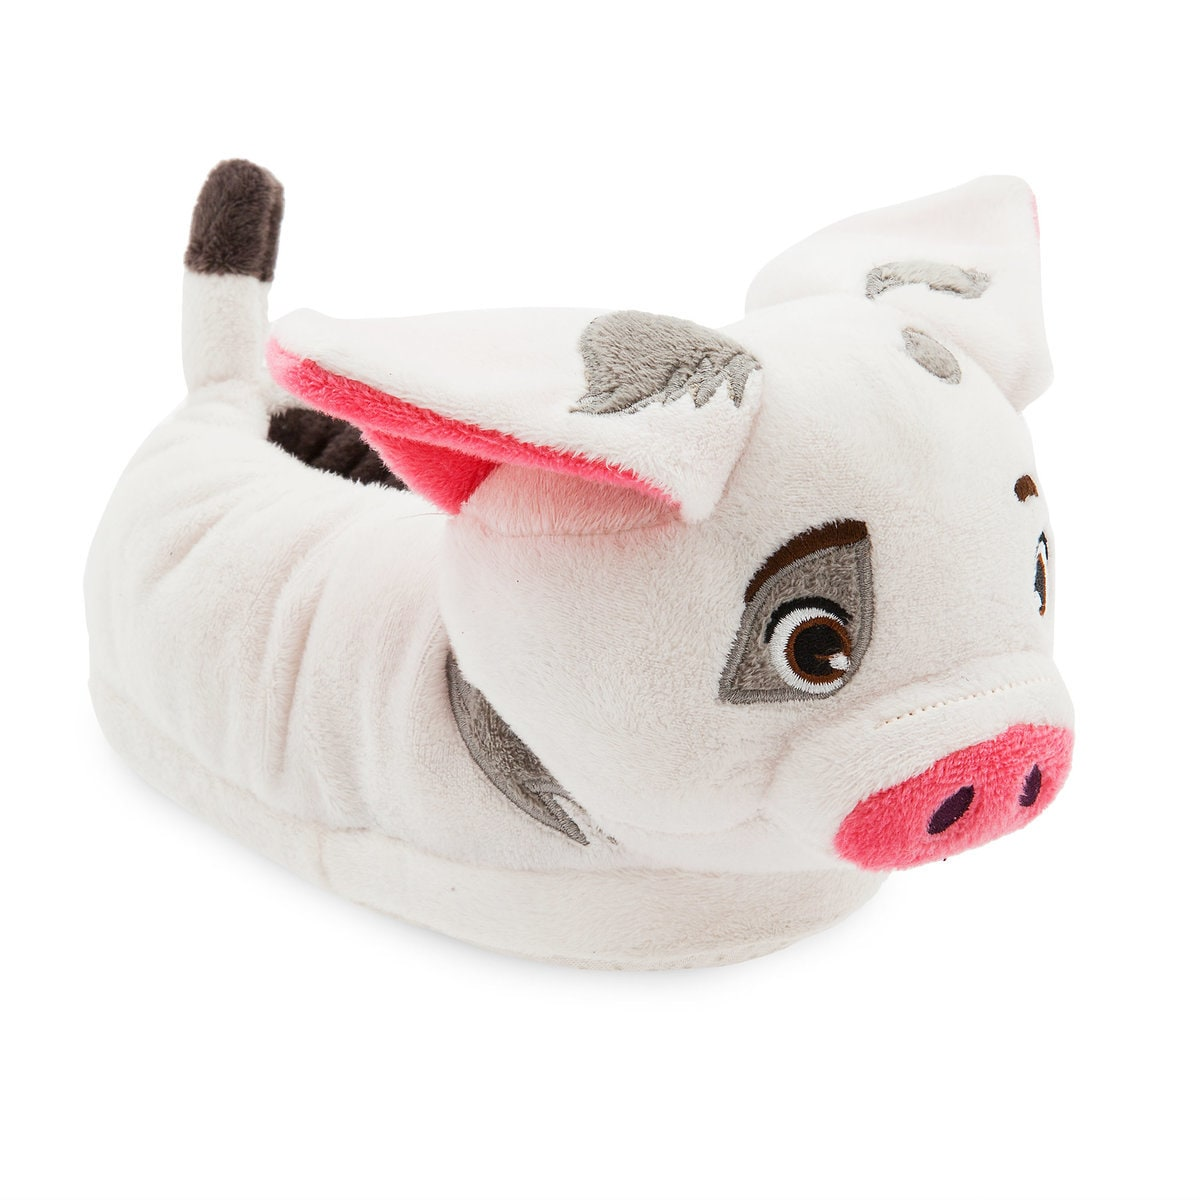 a1829a24be80 Product Image of Pua Slippers for Kids - Moana   1